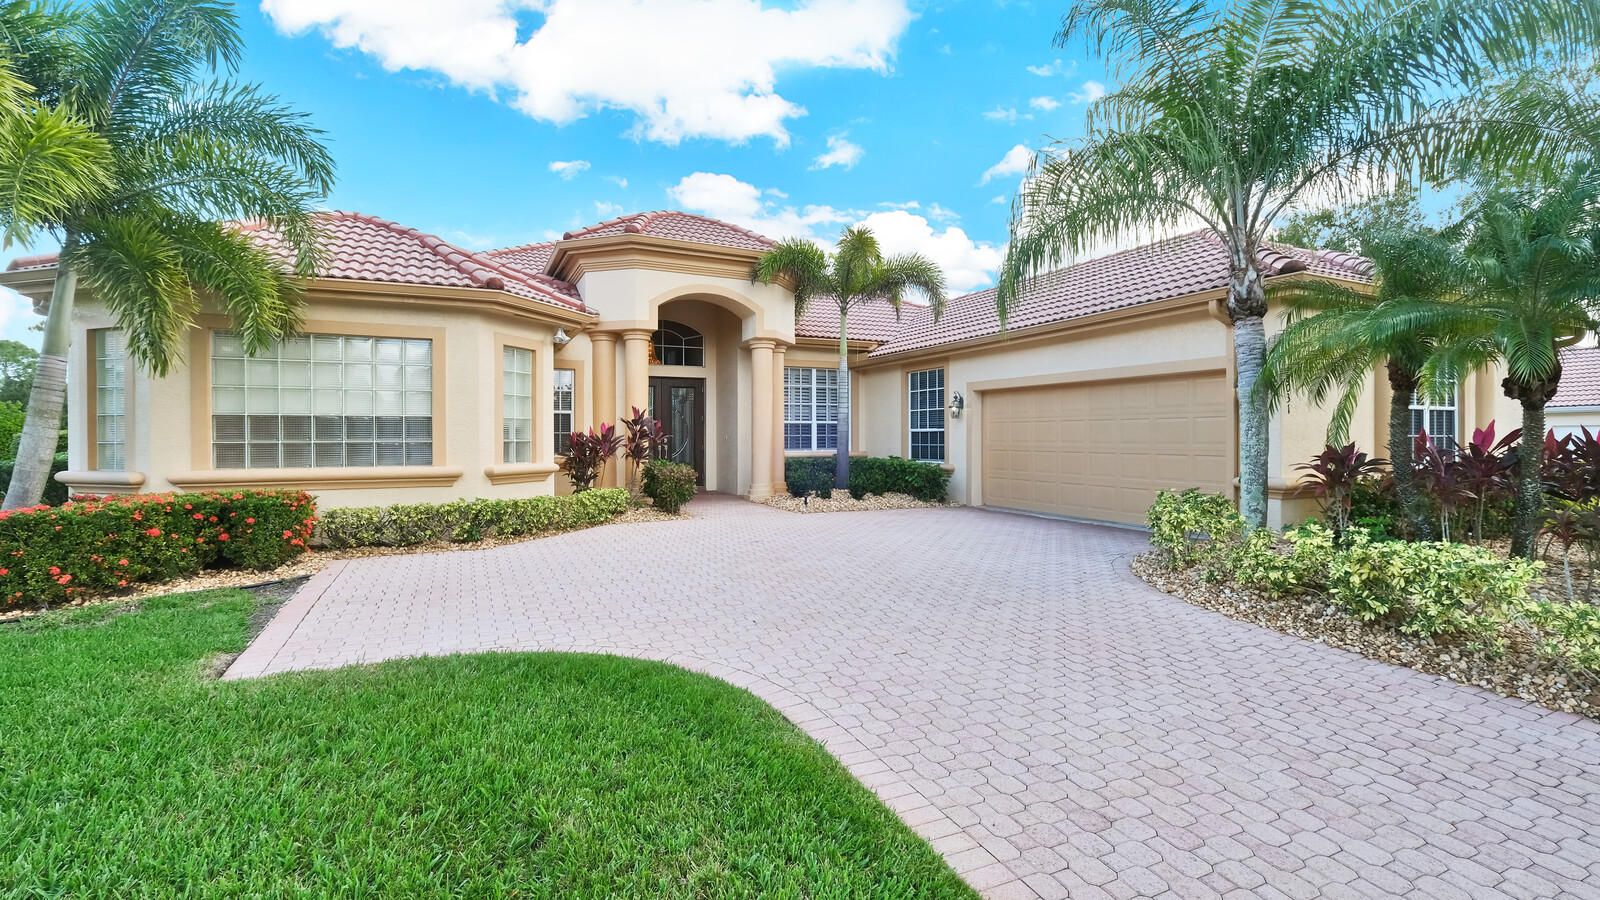 8031 Plantation Lakes Drive, Port Saint Lucie, FL 34986